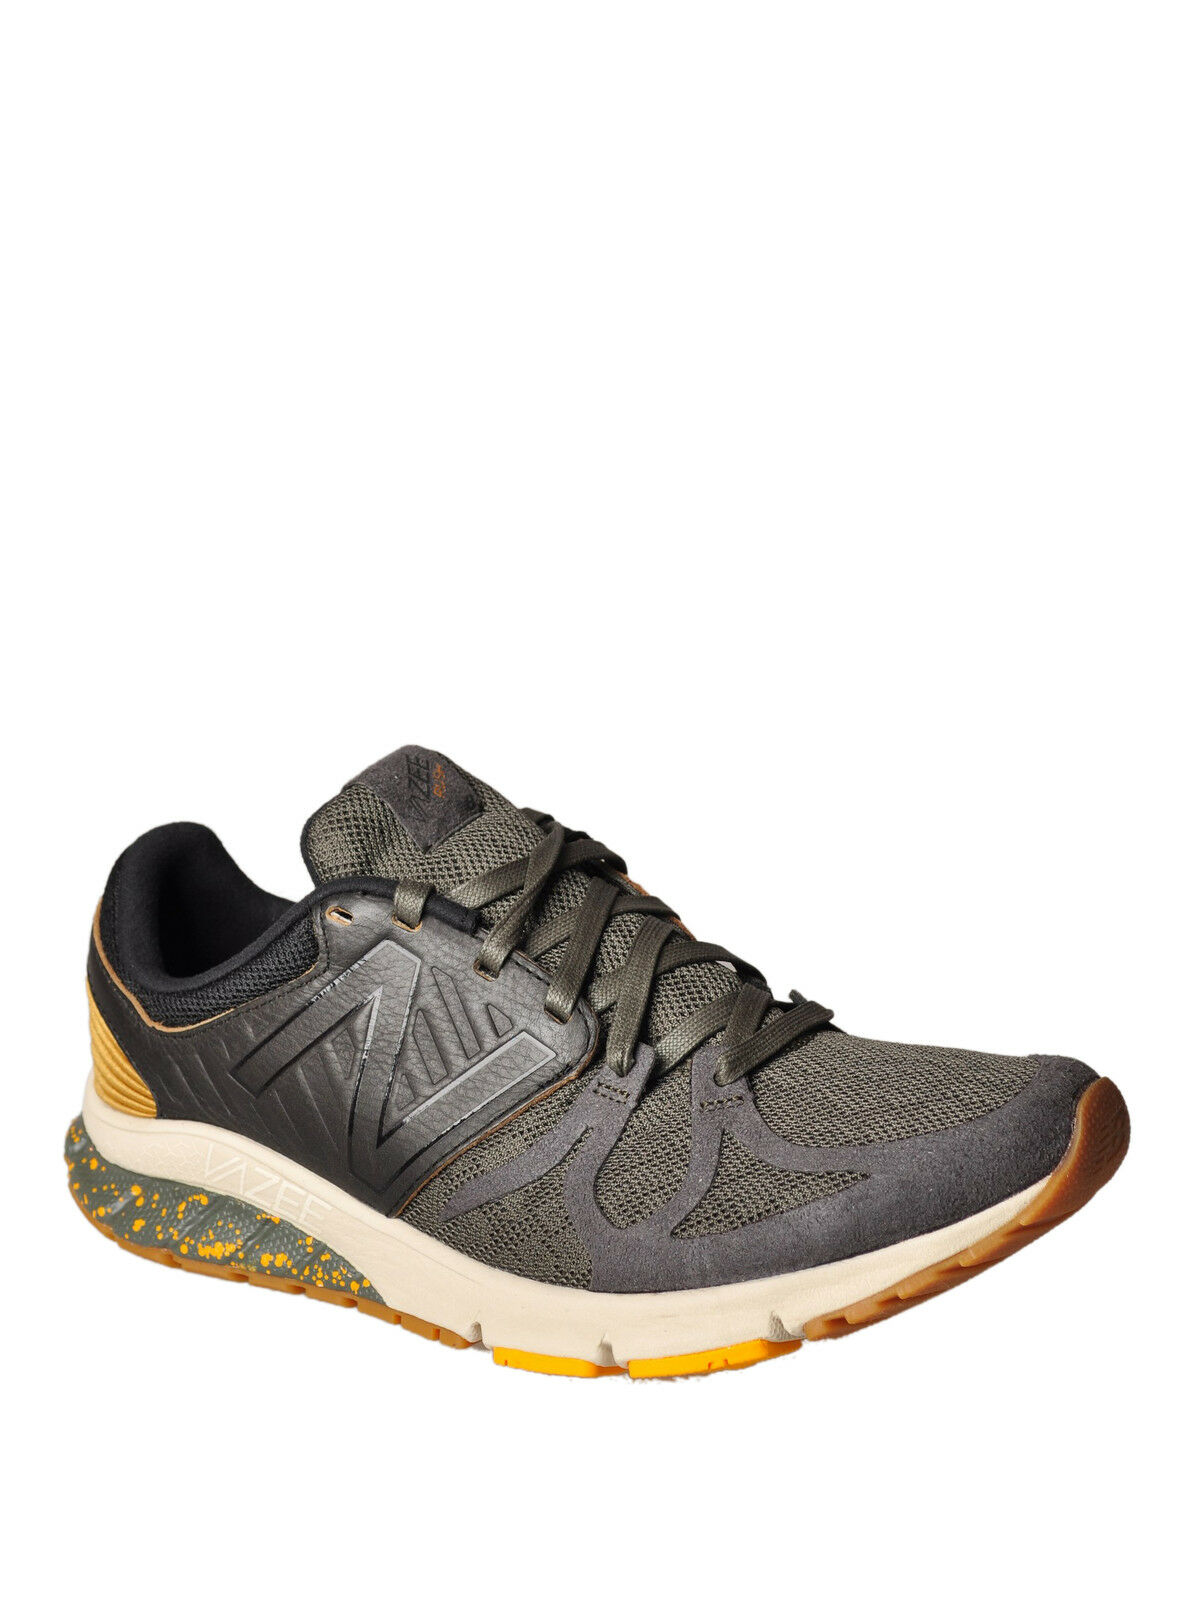 New Balance  -  Sneakers - Male - 42.5 - Brown - 1570326B161728